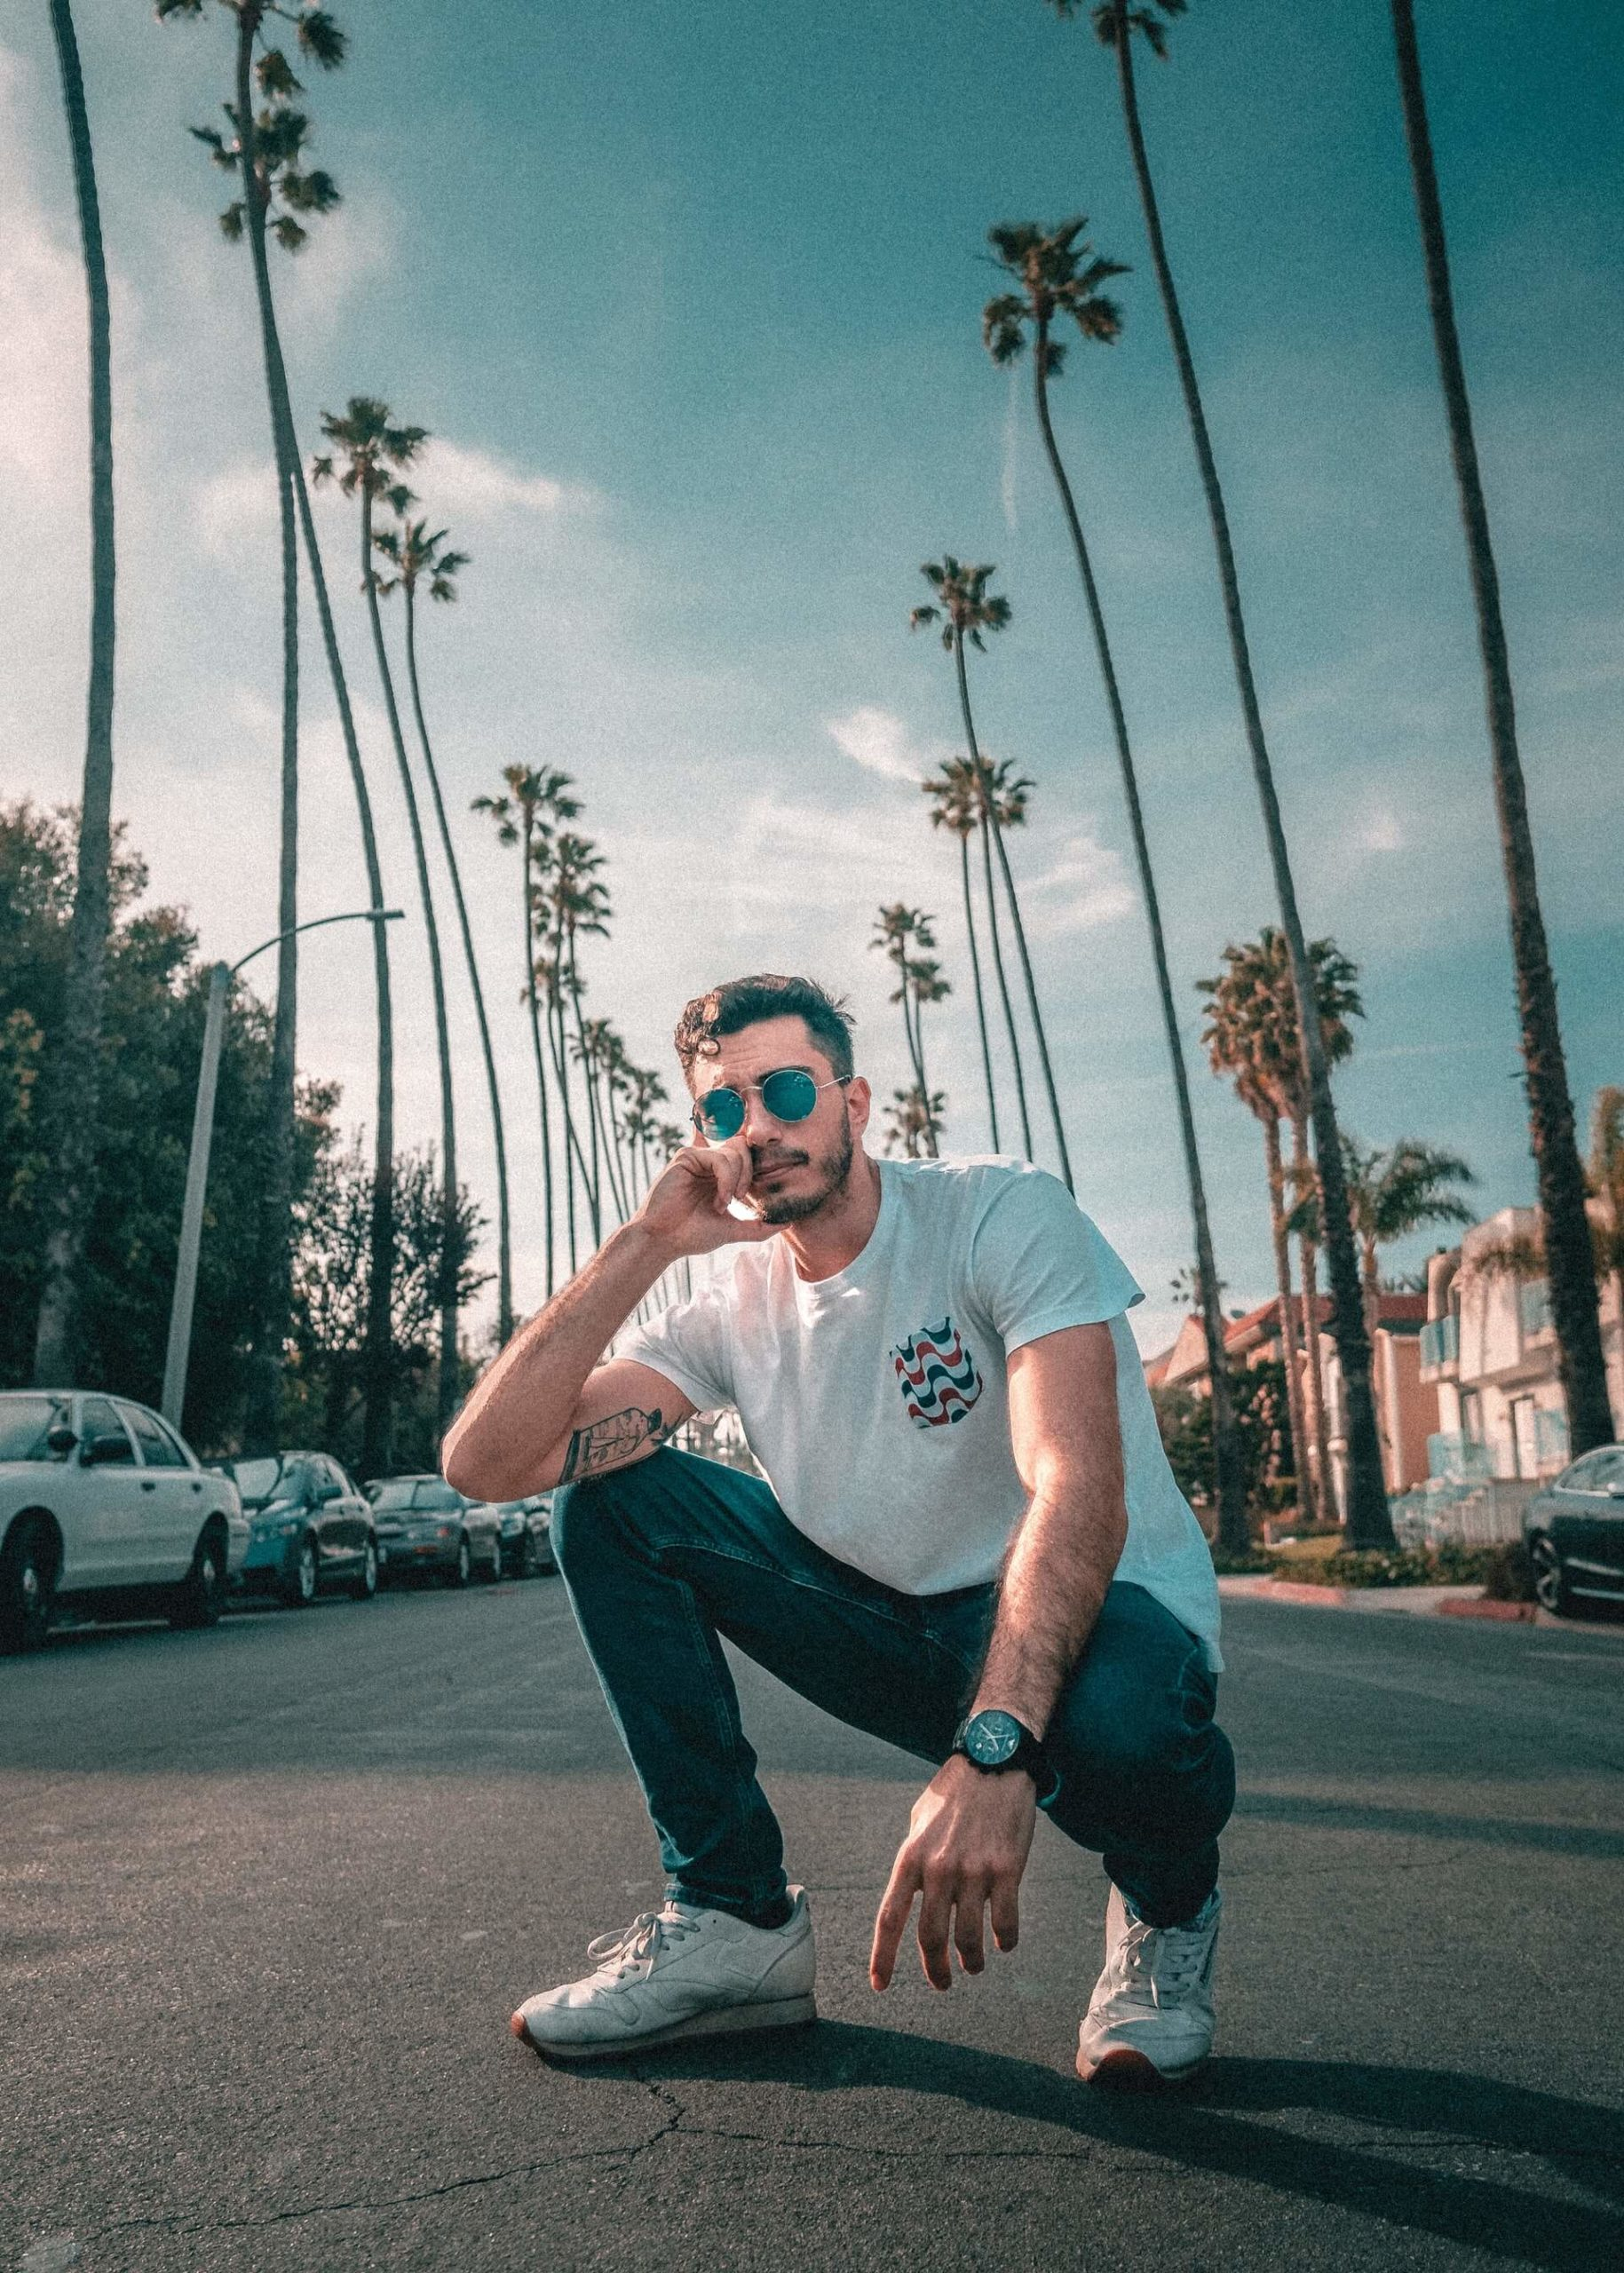 An influencer posing in the street trying hard not to look like a tool and failing